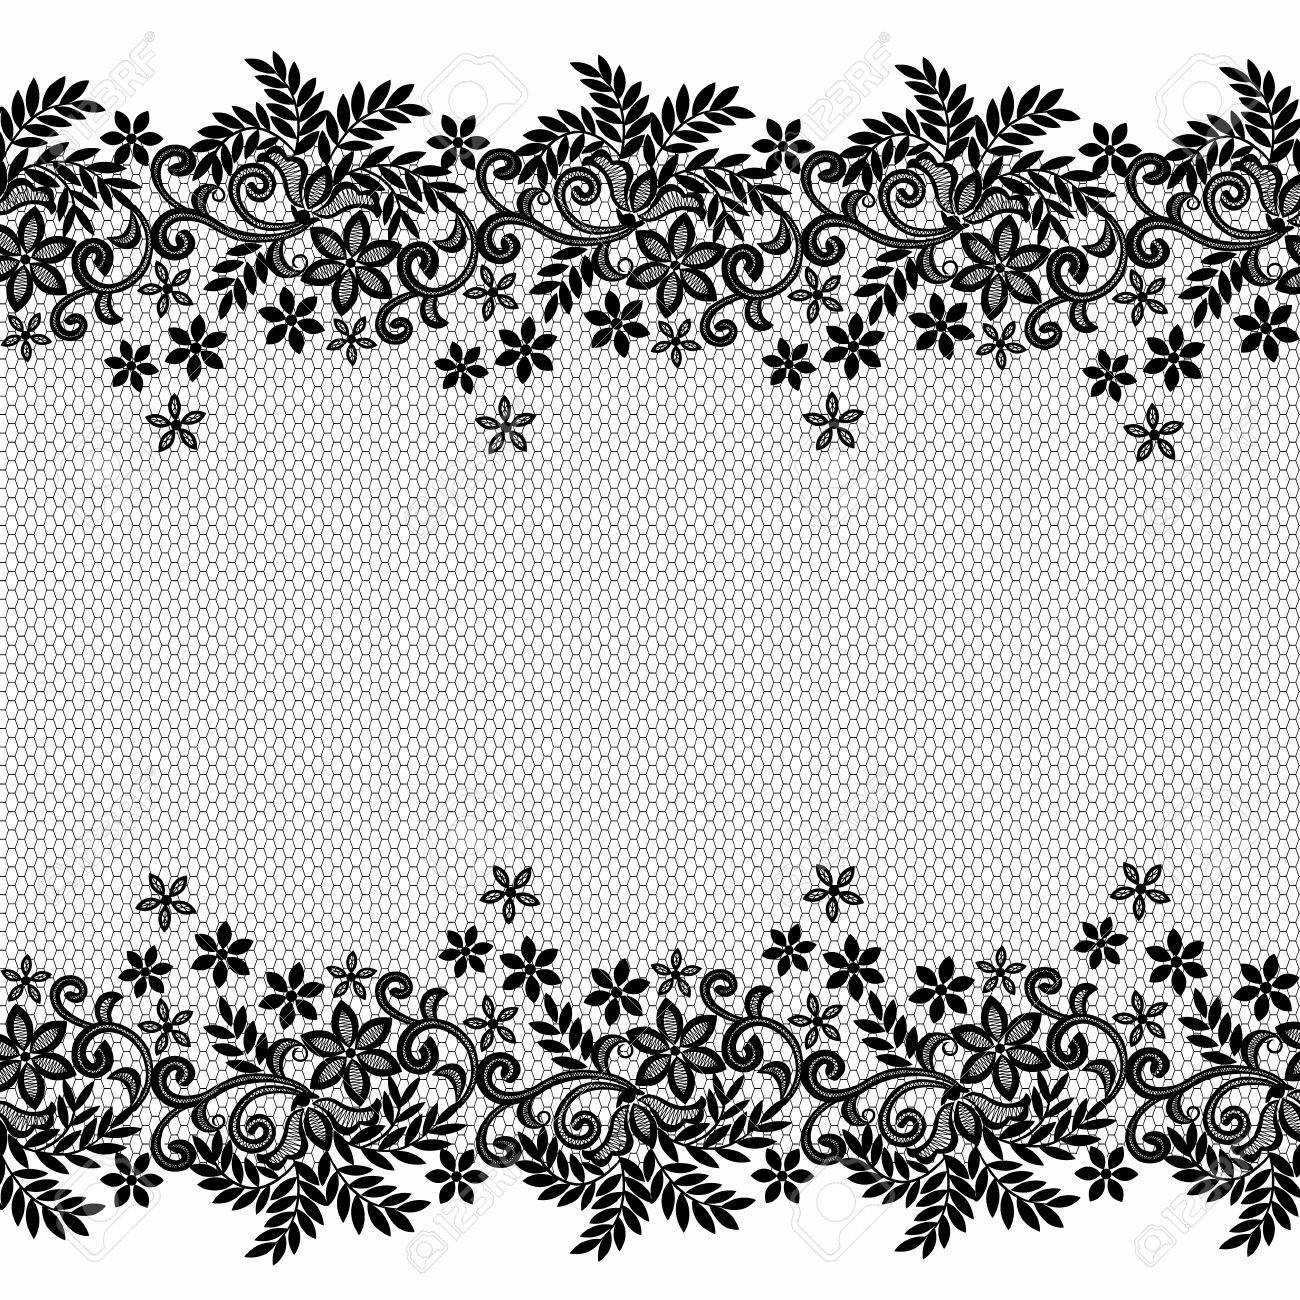 black floral lace border on a white background royalty free cliparts rh 123rf com vintage lace border vector free white lace border vector